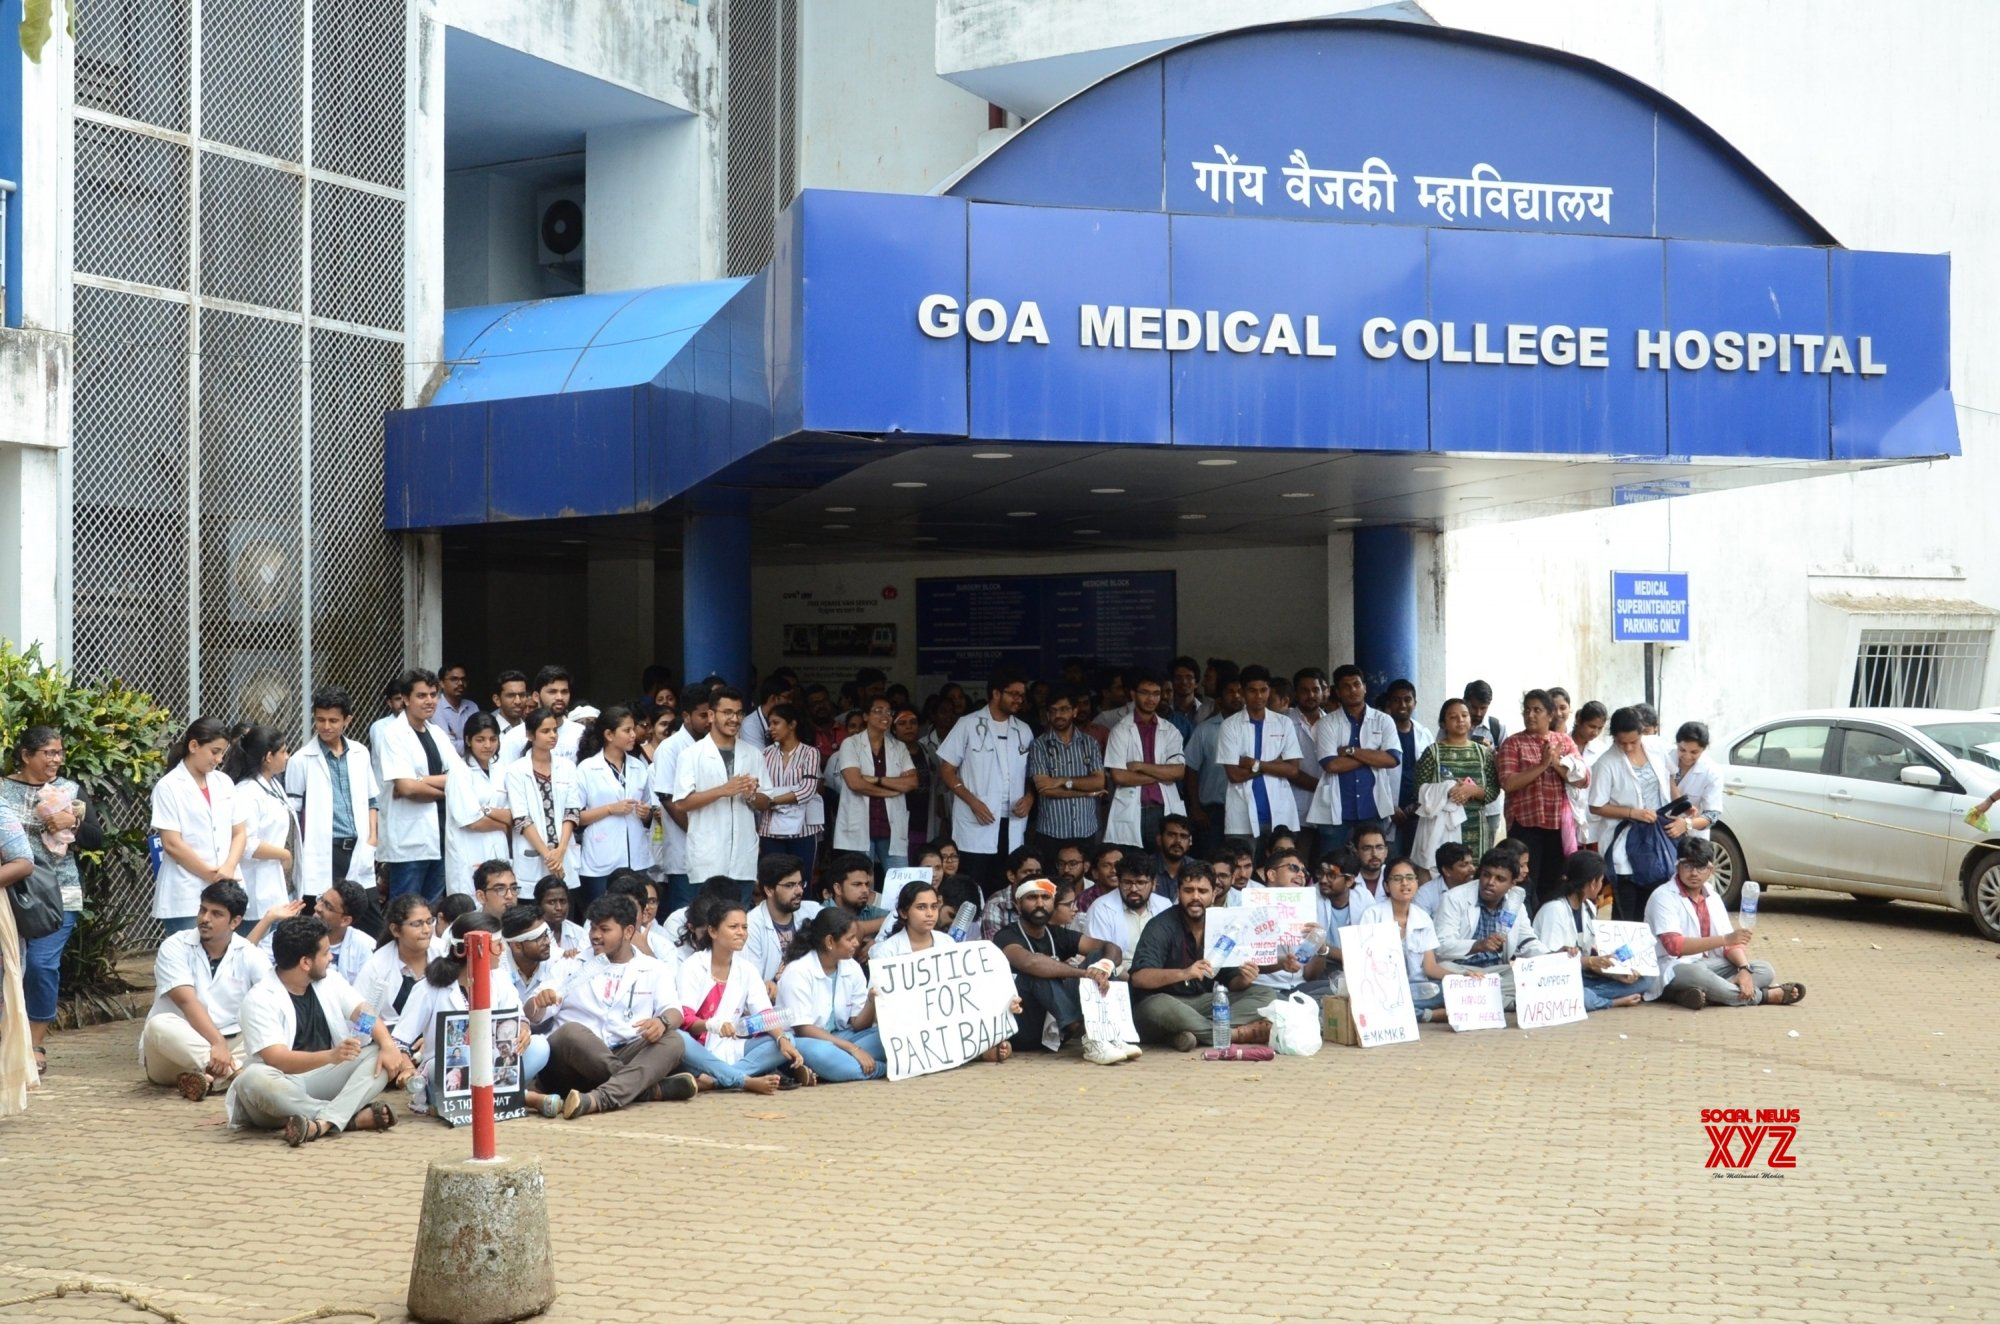 Bambolim: Goa doctors protest in solidarity with Kolkata medicos #Gallery